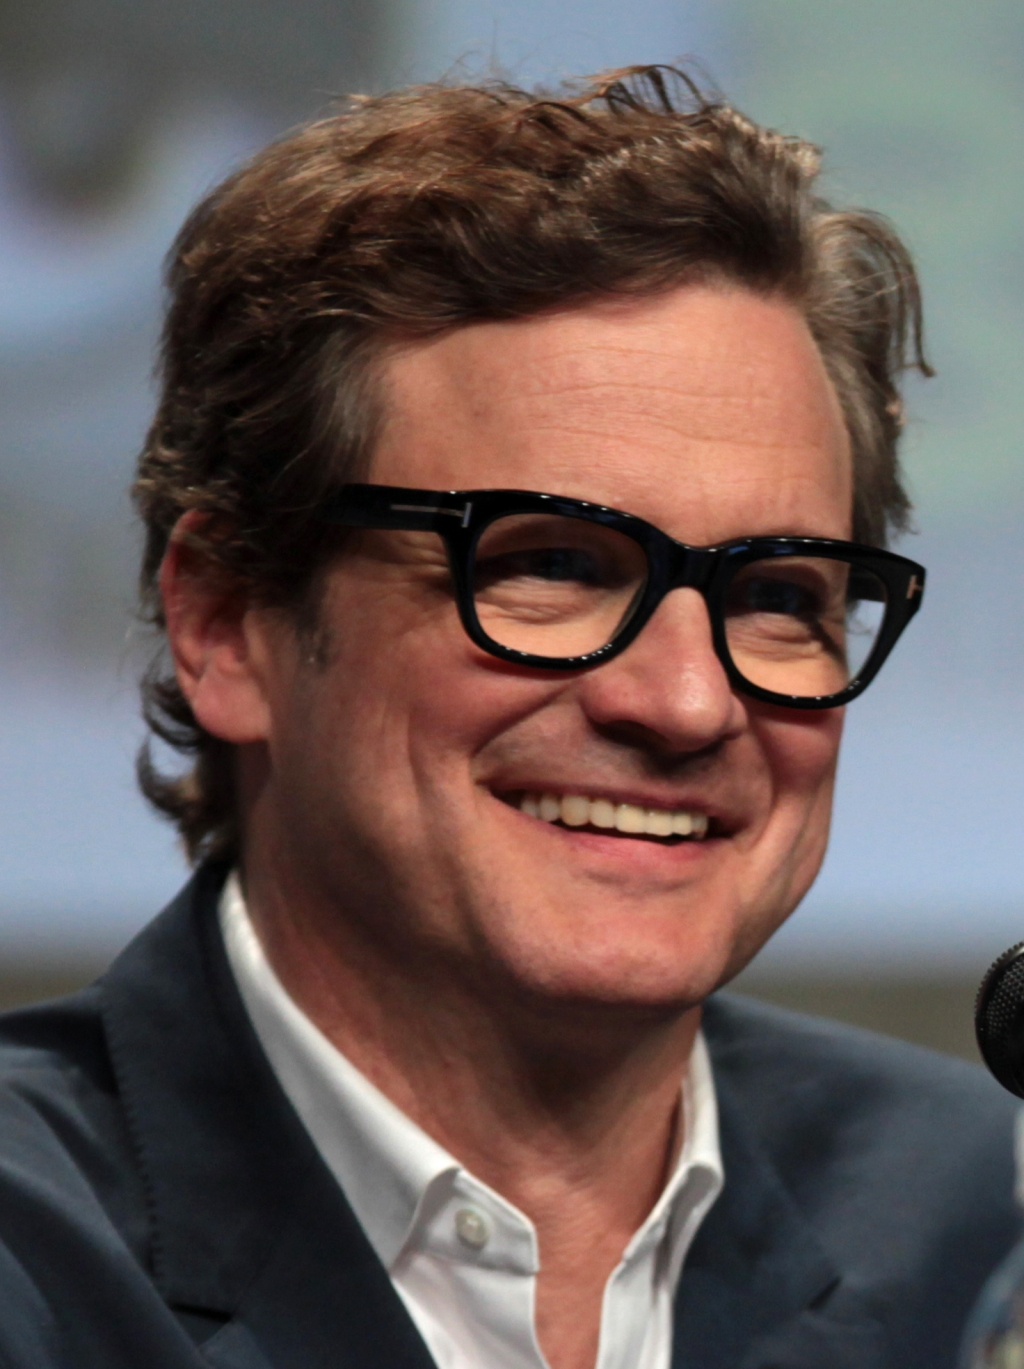 Kingsman the golden circle cast updates colin firth teases kingsman the golden circle cast updates colin firth teases unconventional extraordinary sequel featuring harry harts surprise return geenschuldenfo Images